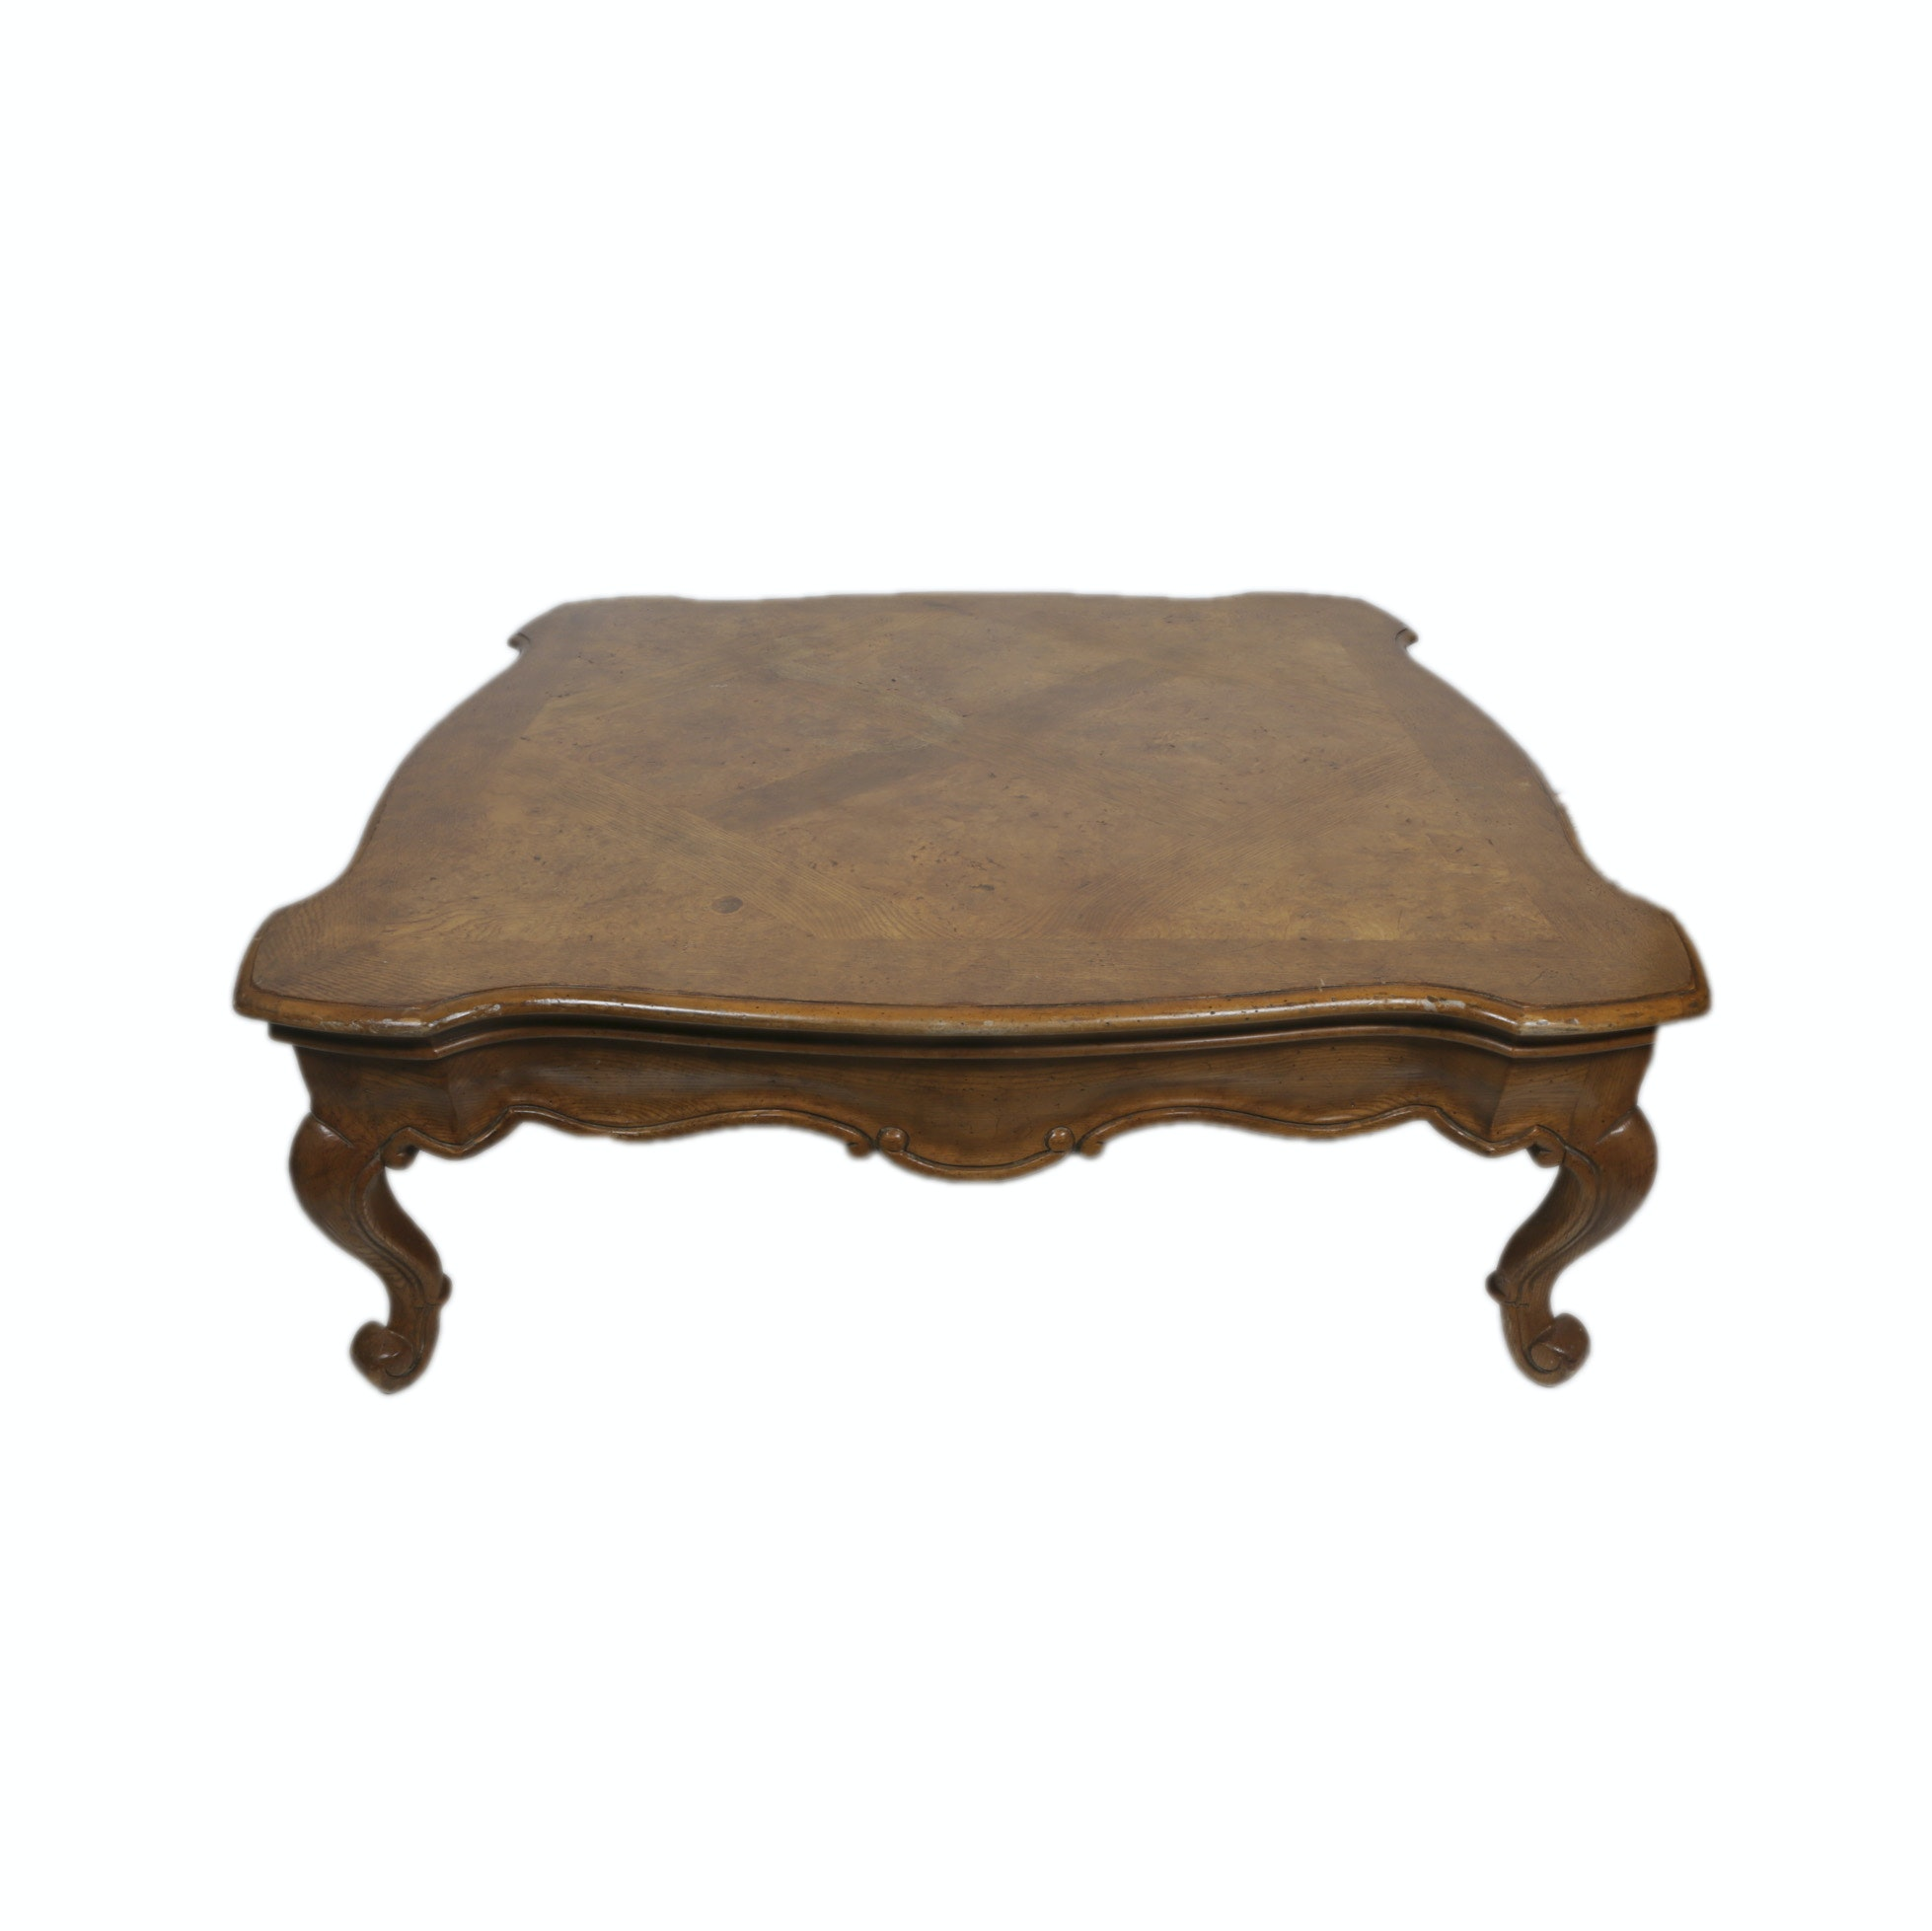 Vintage French Style Burlwood and Oak Parquetry Coffee Table